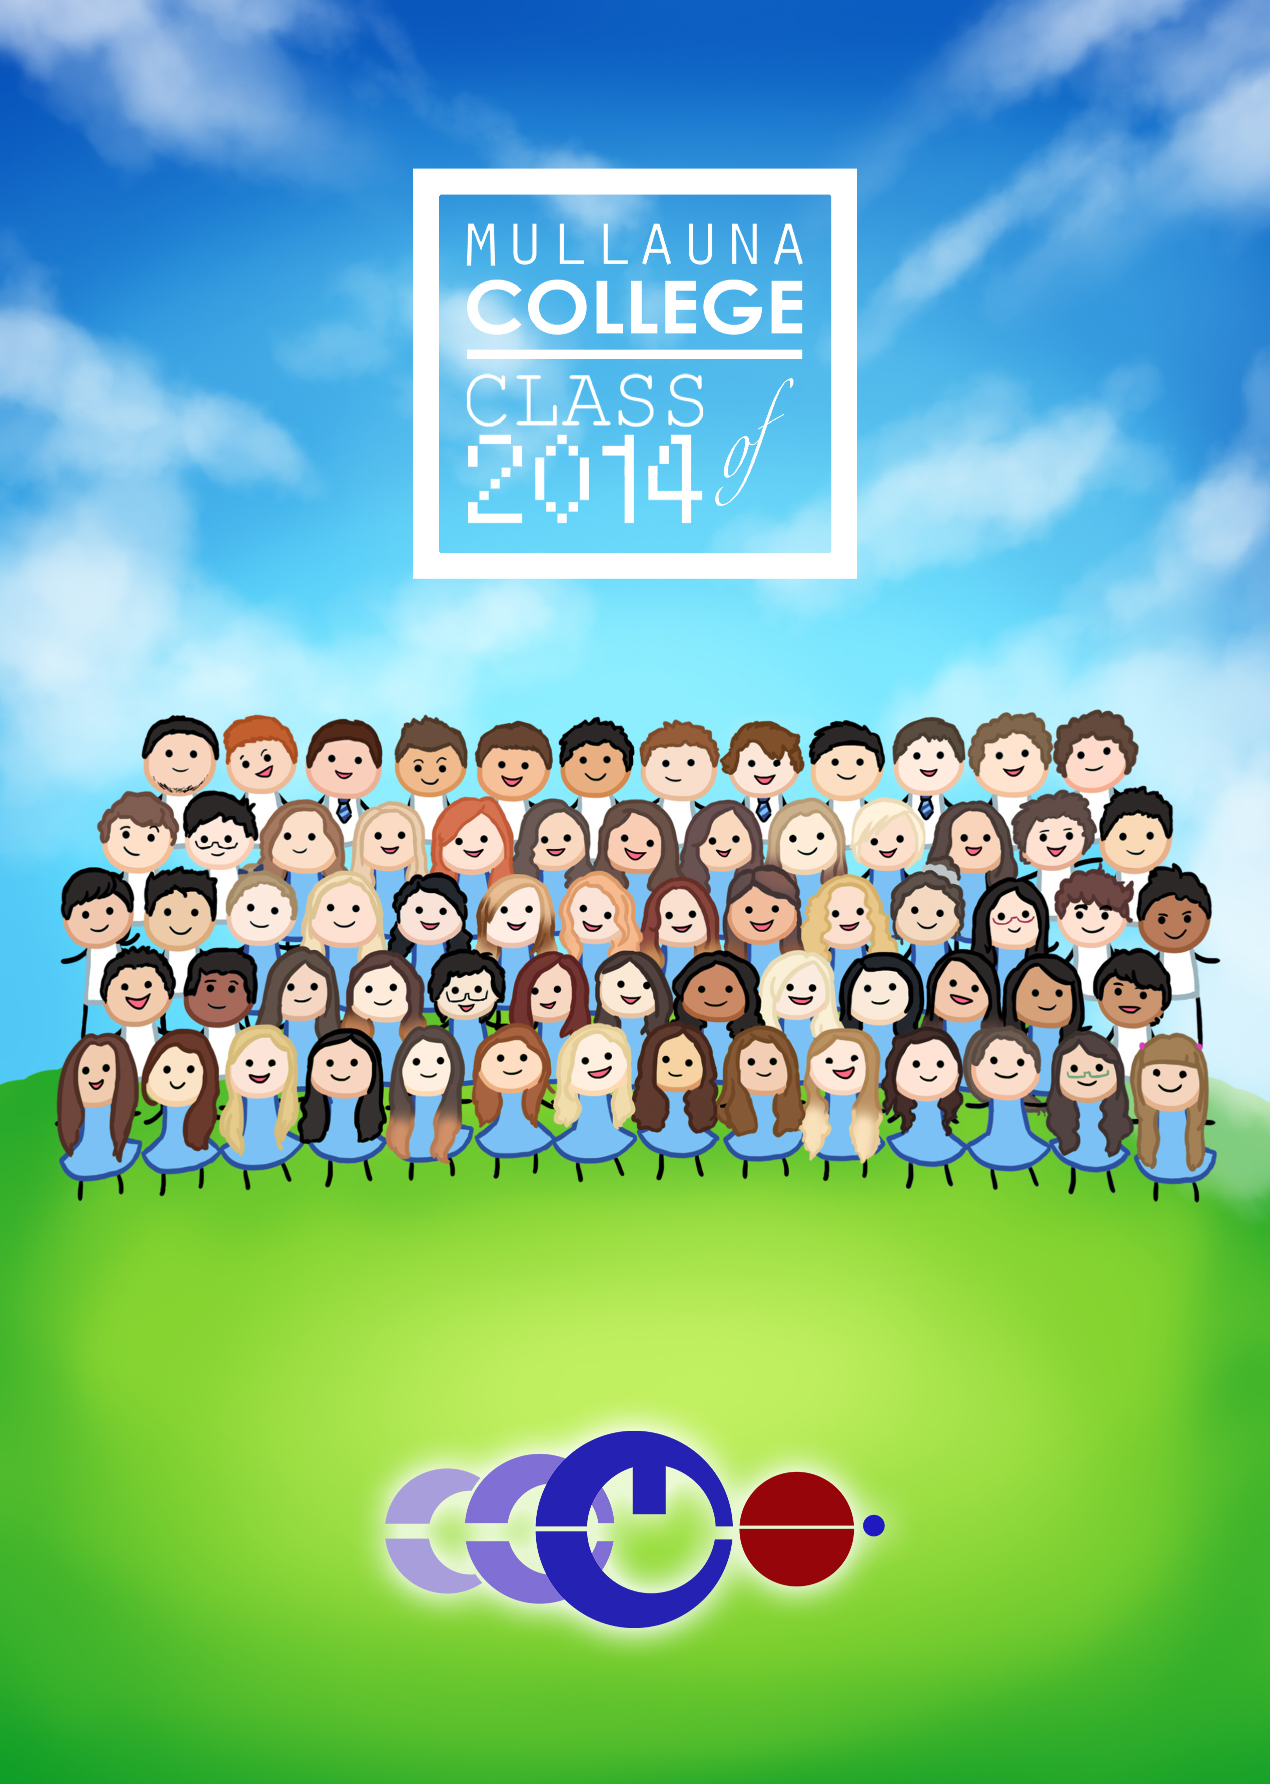 Mullauna College, 2014 Yearbook